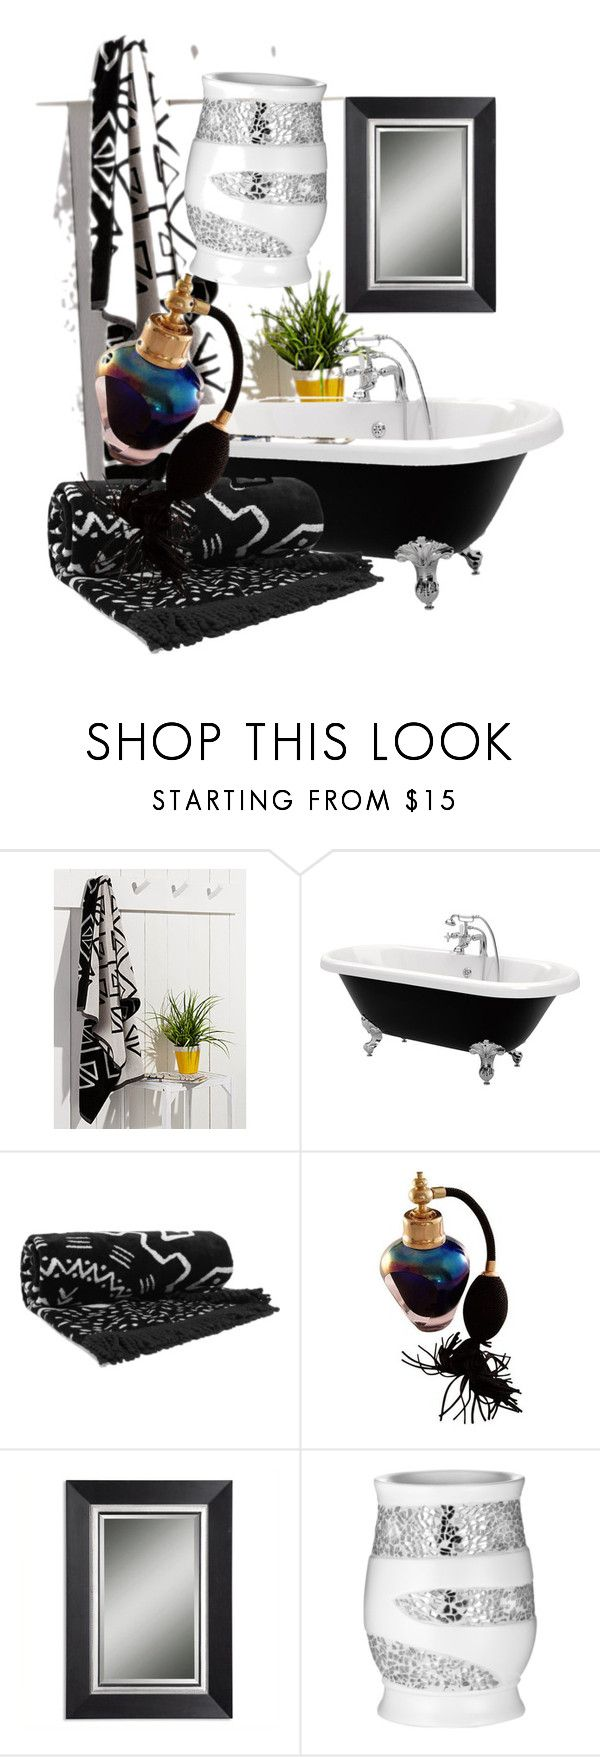 """""""Untitled #159"""" by vendys on Polyvore featuring interior, interiors, interior design, home, home decor, interior decorating, Simons Maison, The Beach People and Uttermost"""